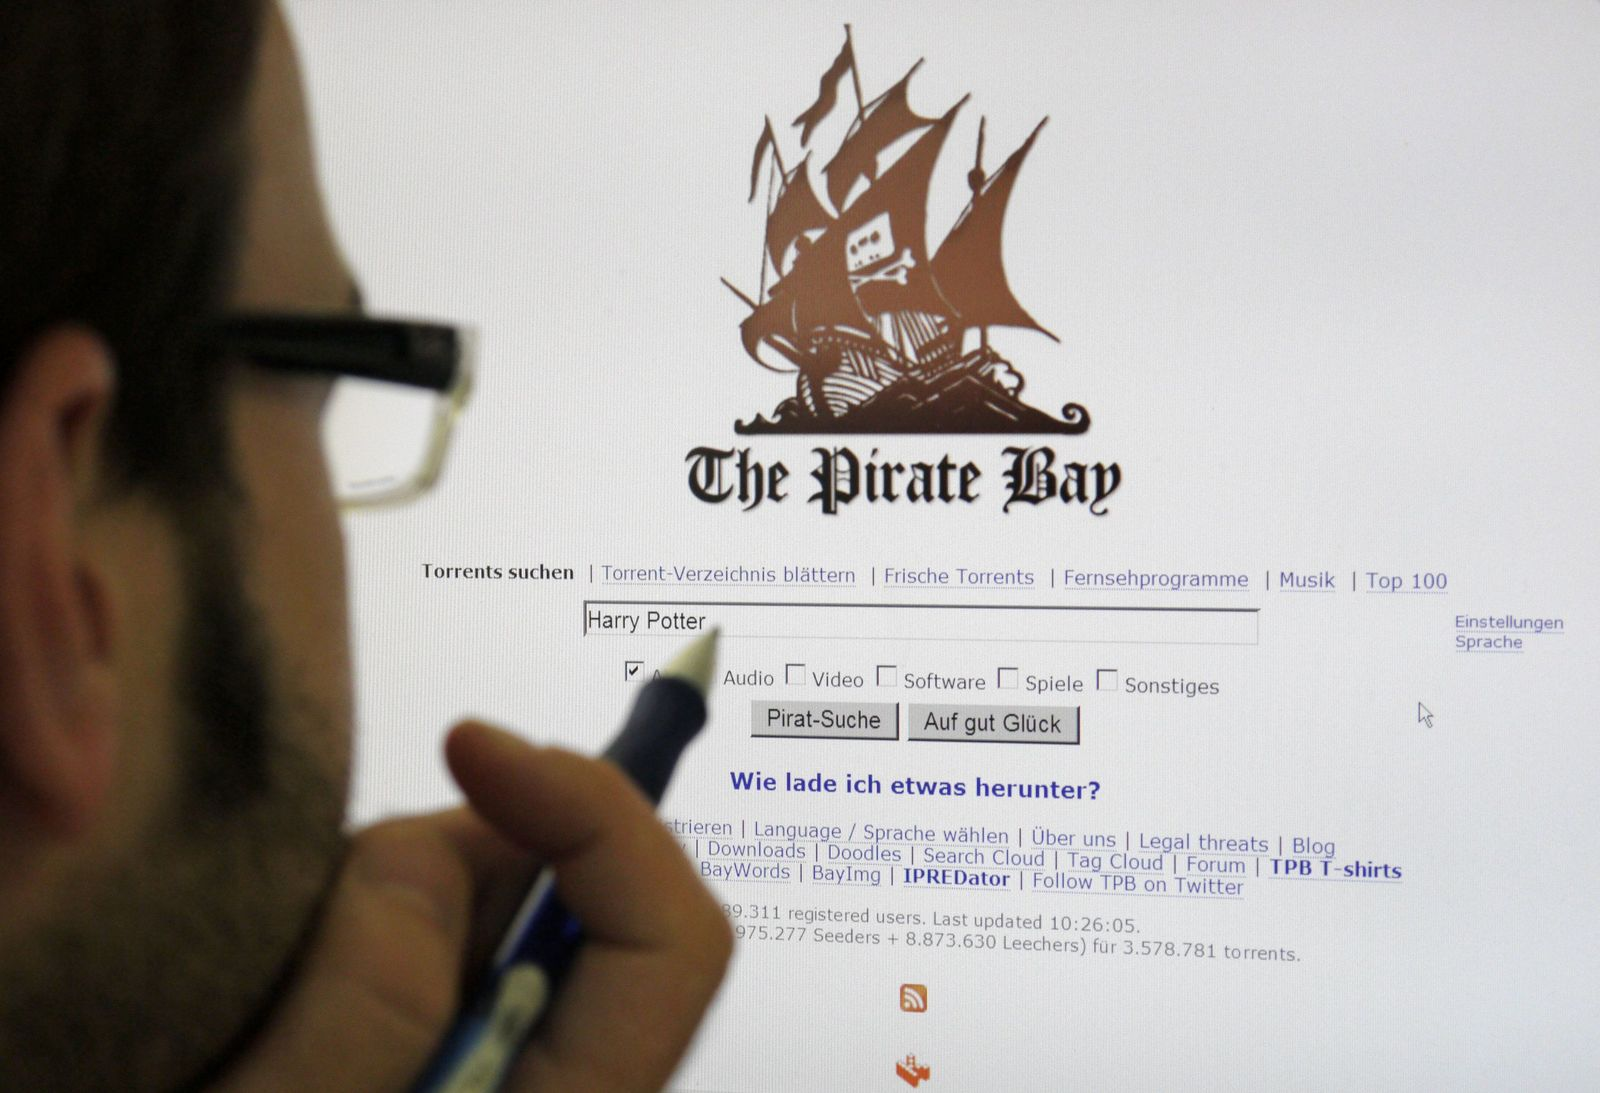 Tauschplattform Pirate Bay